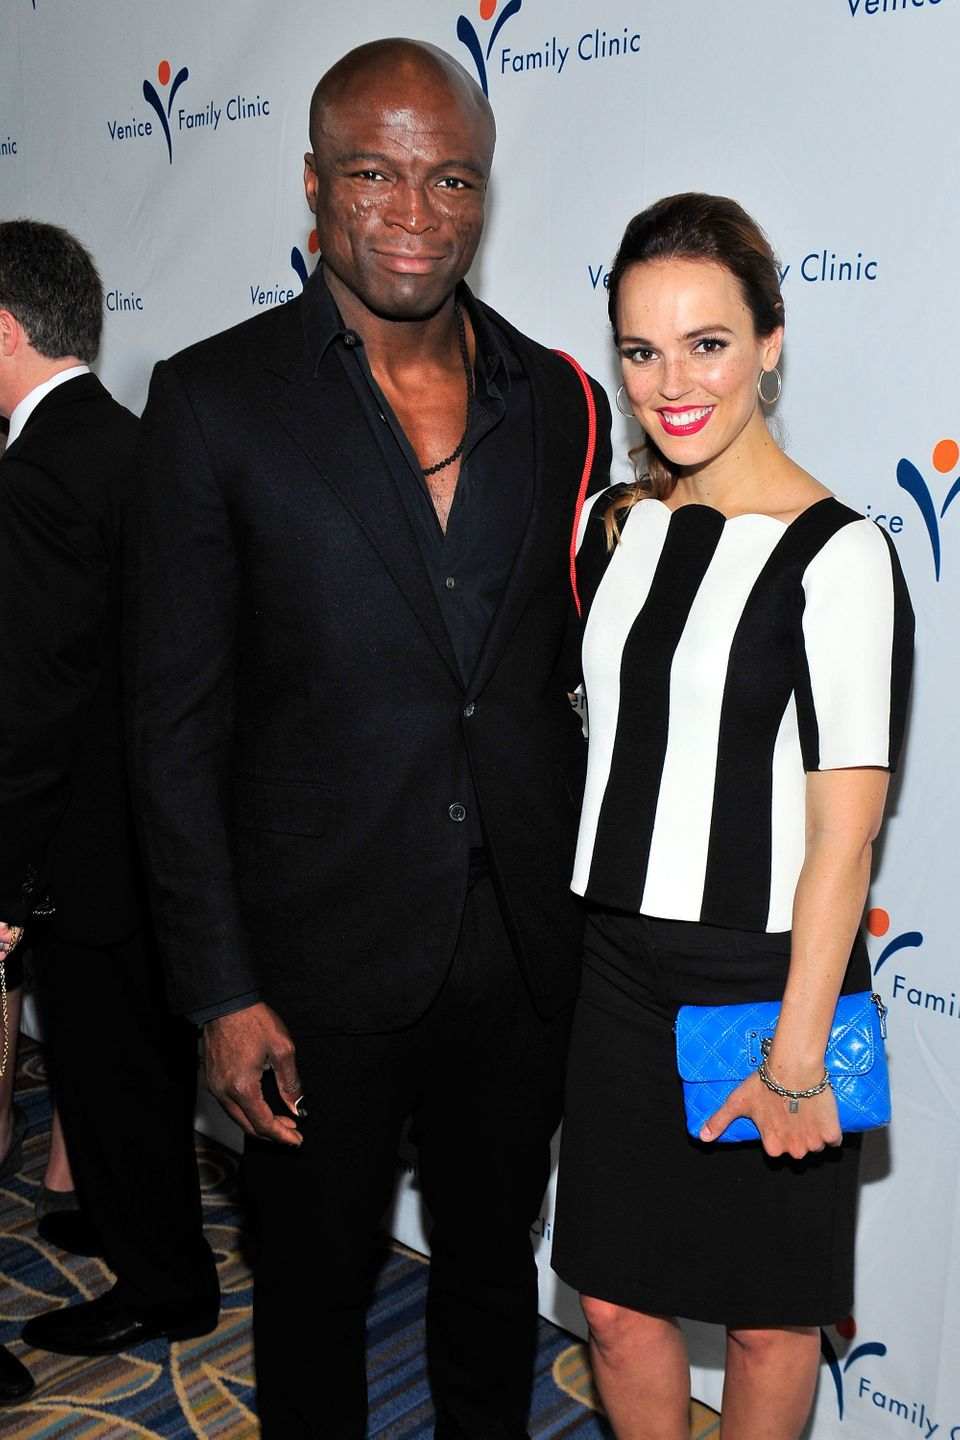 """Rumors that musician Seal, 50, and actress Erin Cahill, 33, are dating, started swirling after the <a href=""""http://www.usmaga"""